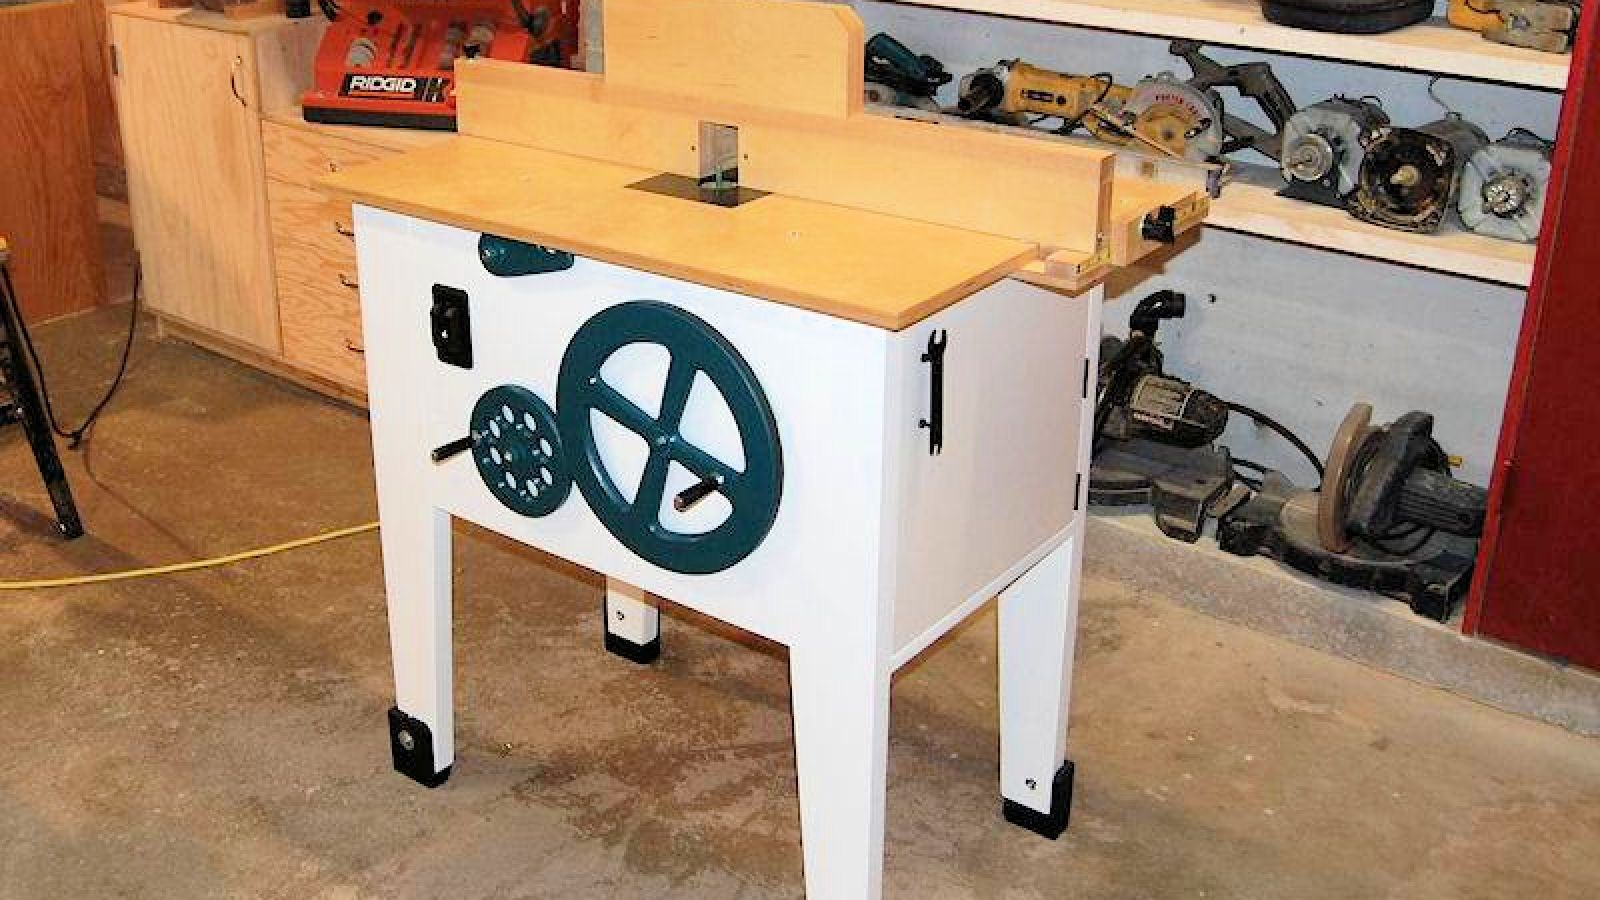 Build a router table with integrated lift mechanism build a router table with integrated lift mechanism keyboard keysfo Image collections